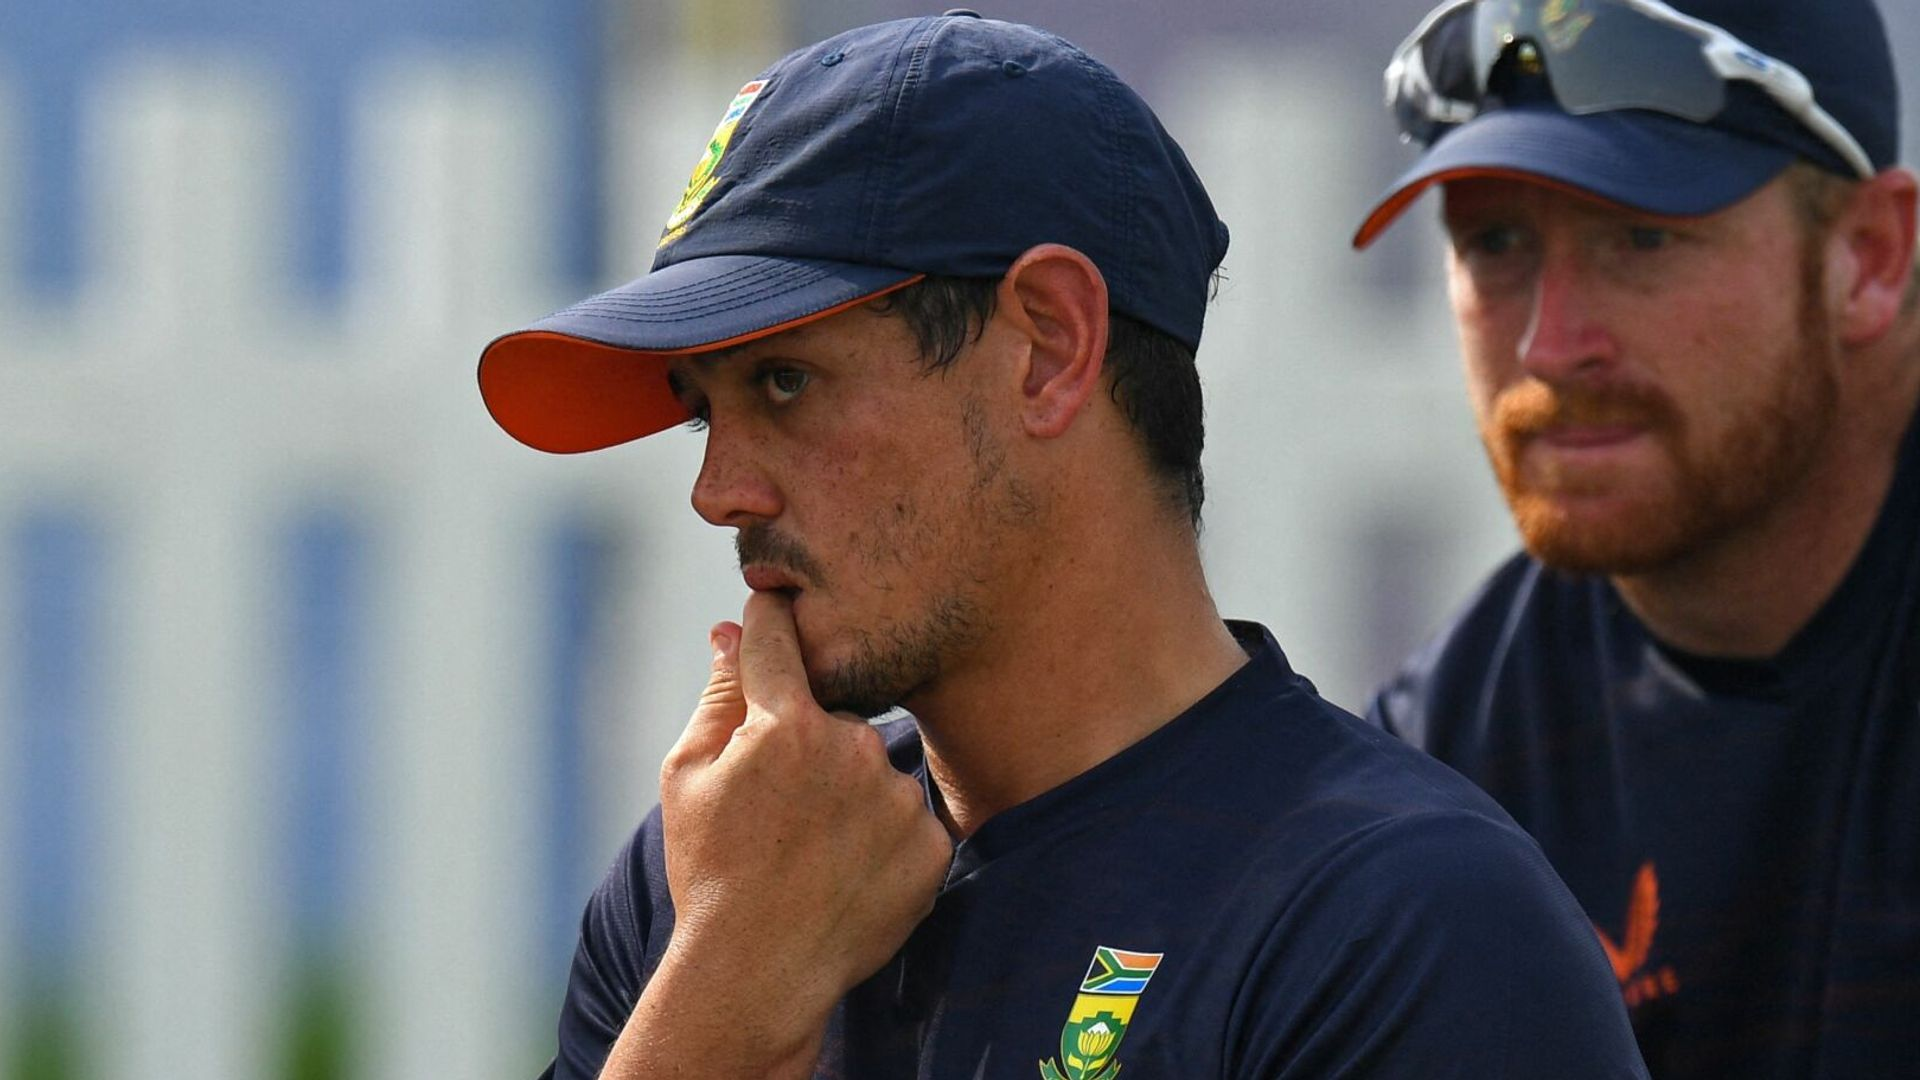 De Kock misses World Cup match after refusing to take knee